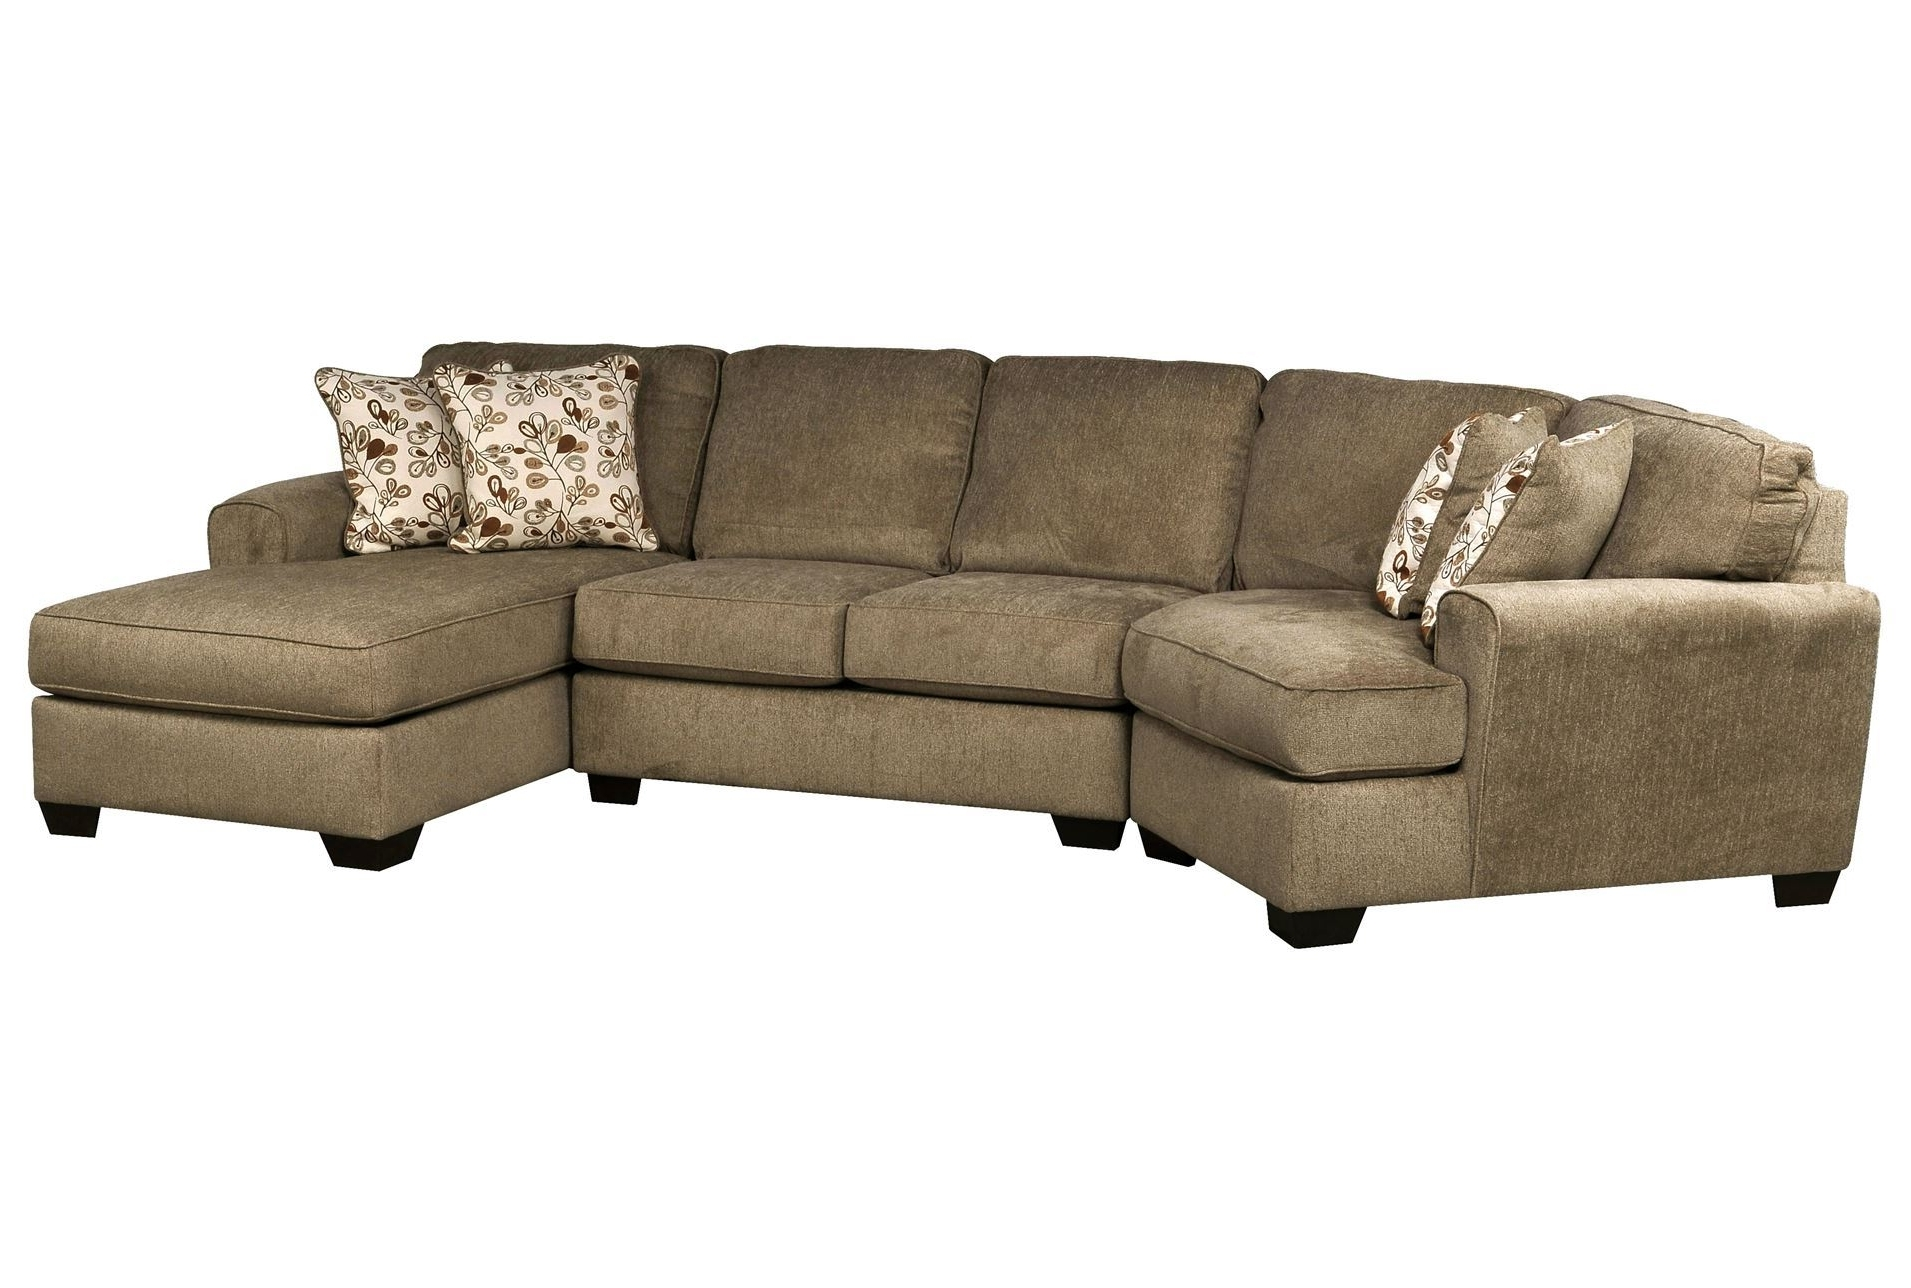 Current Salt Lake City Sectional Sofas Within Don't Love The Color, But The Shape Is Great! (View 16 of 20)